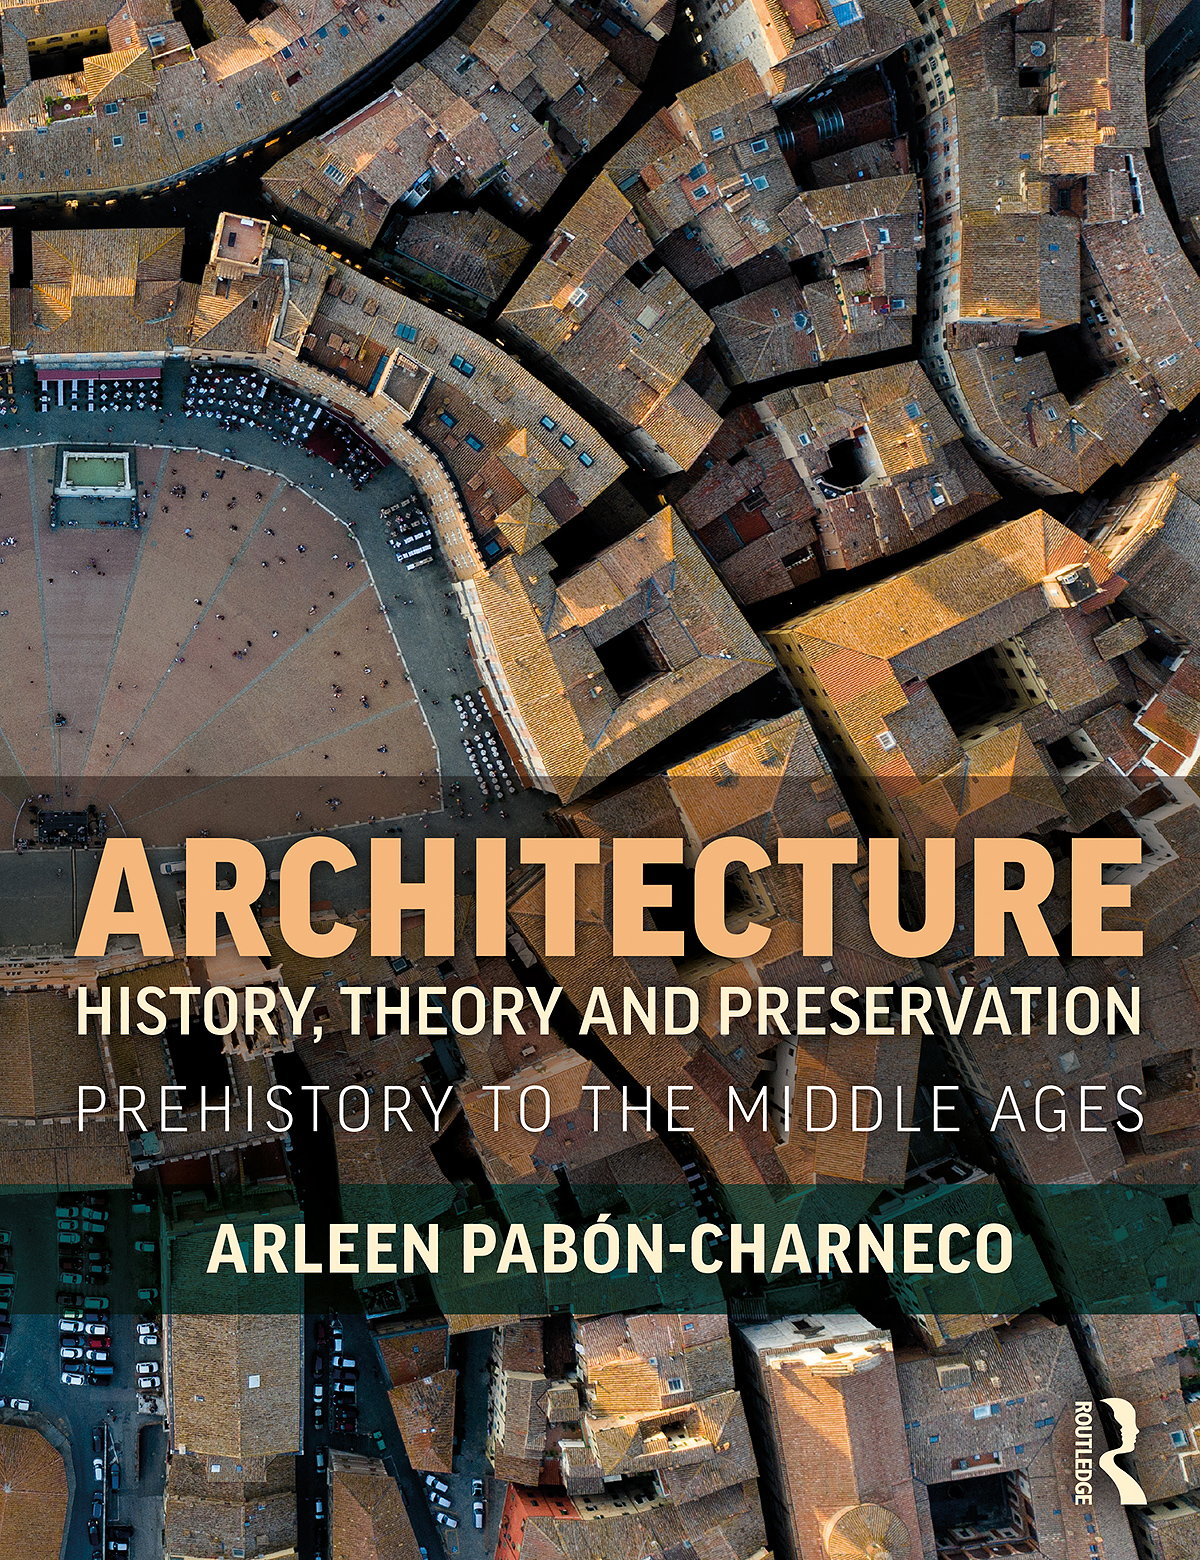 Architecture History, Theory and Preservation